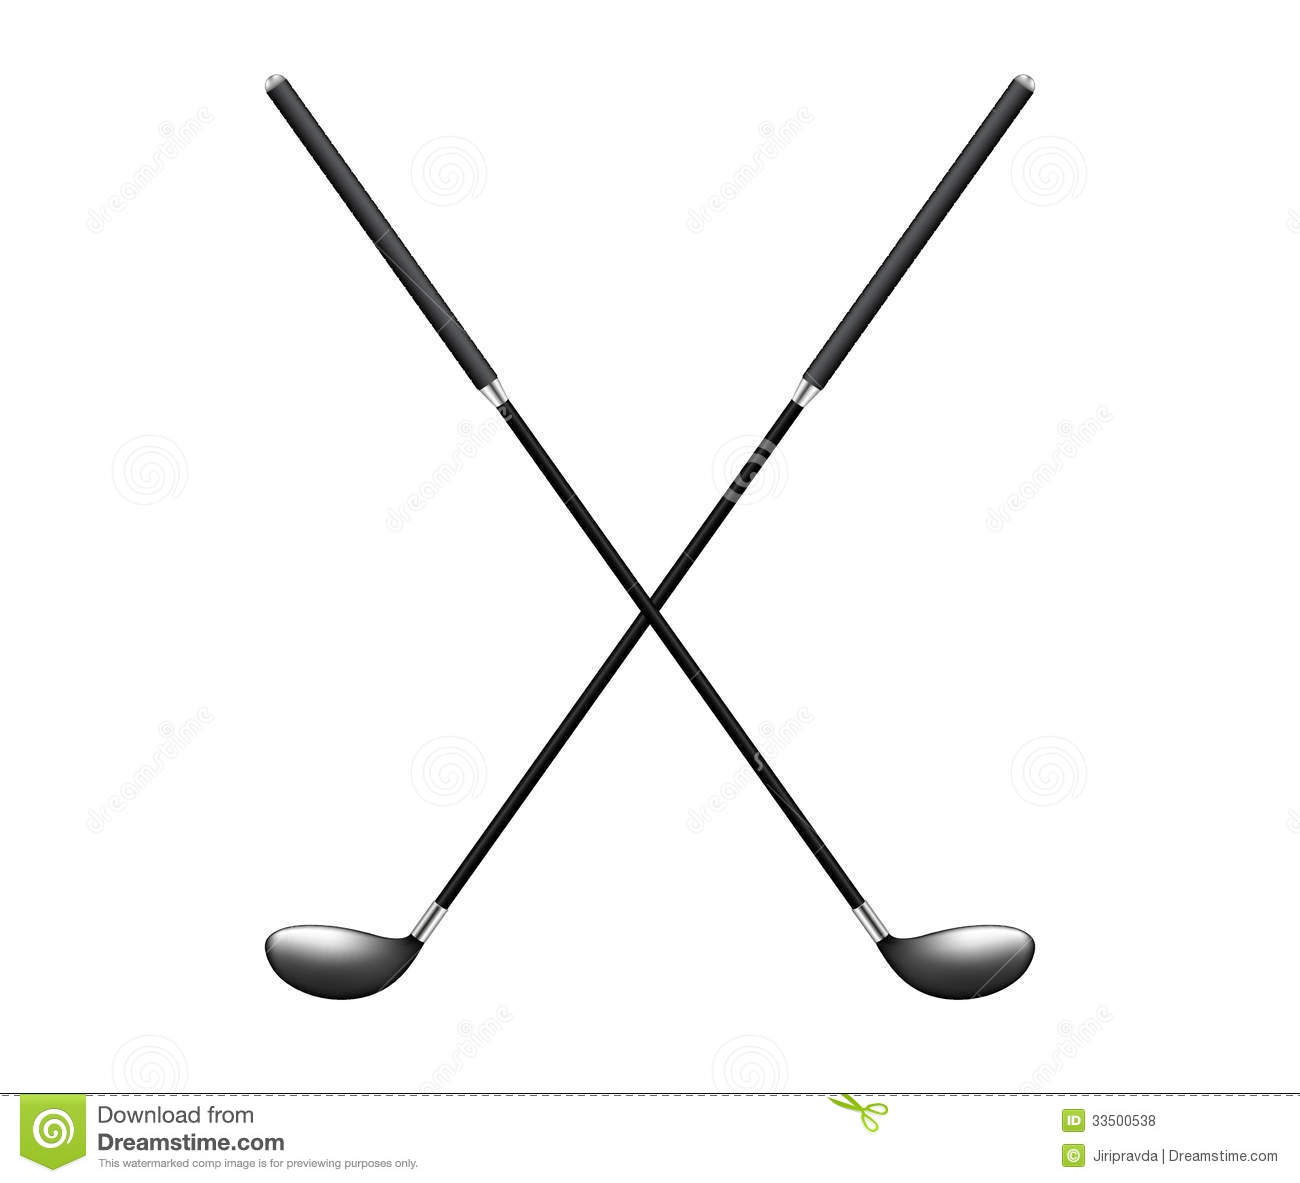 Golf clipart crossed golf club. Clubs with ball library